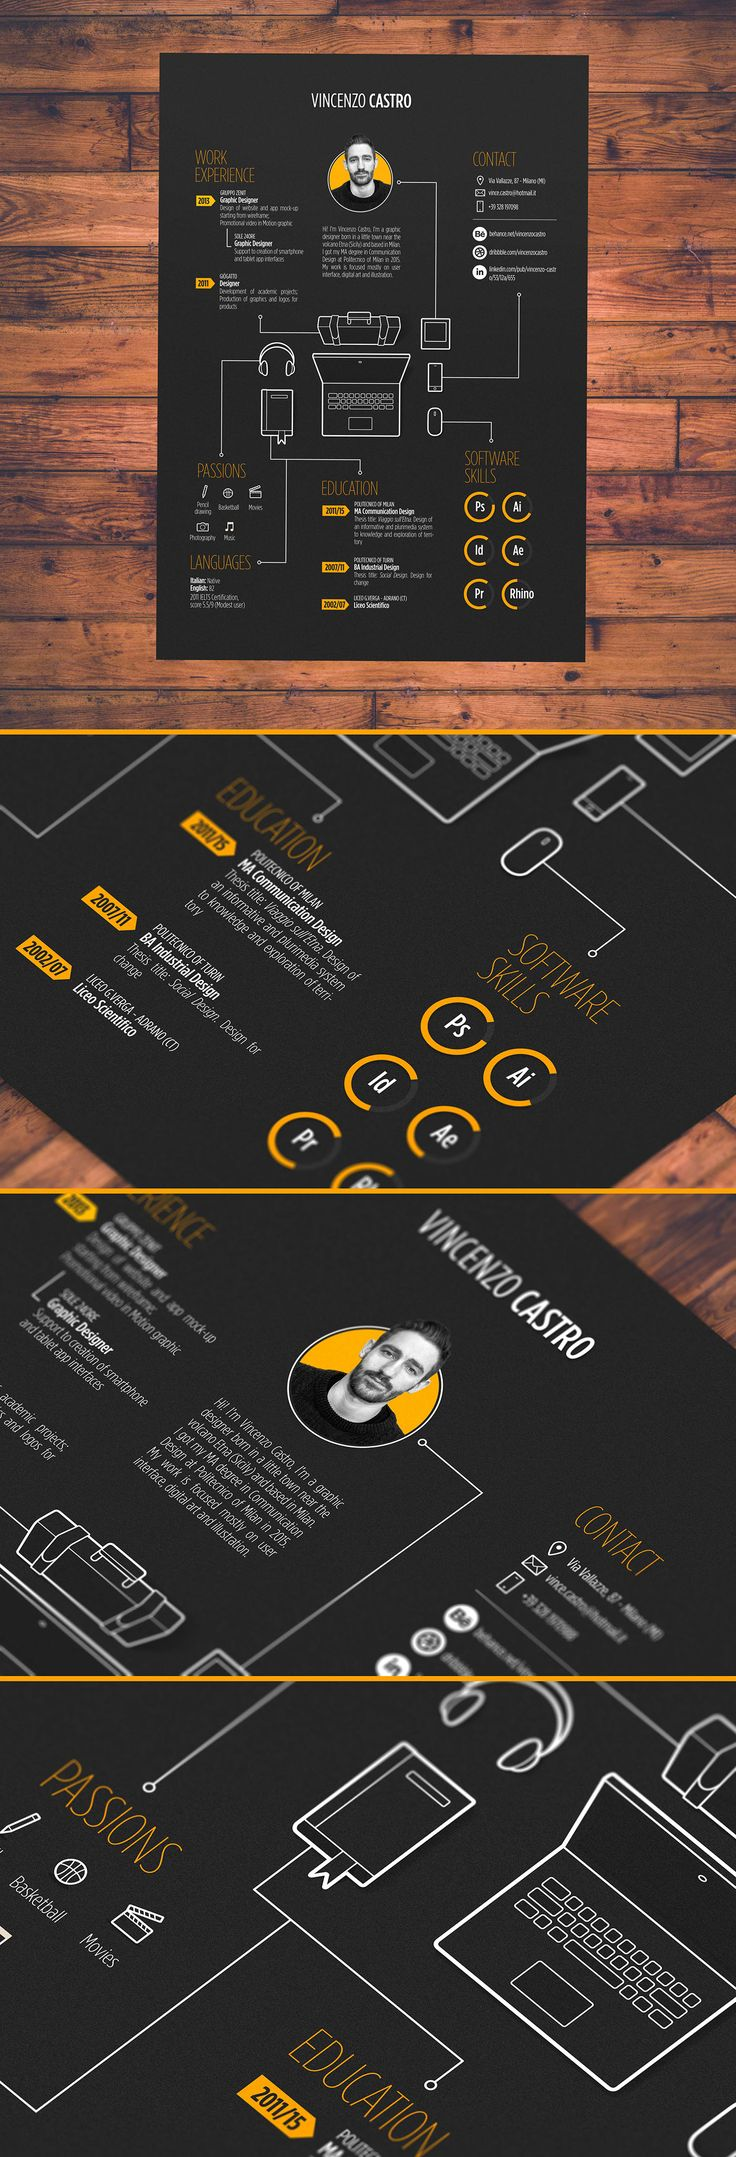 Graphic Design Resume 741 Best Resume Images On Pinterest  Resume Curriculum And